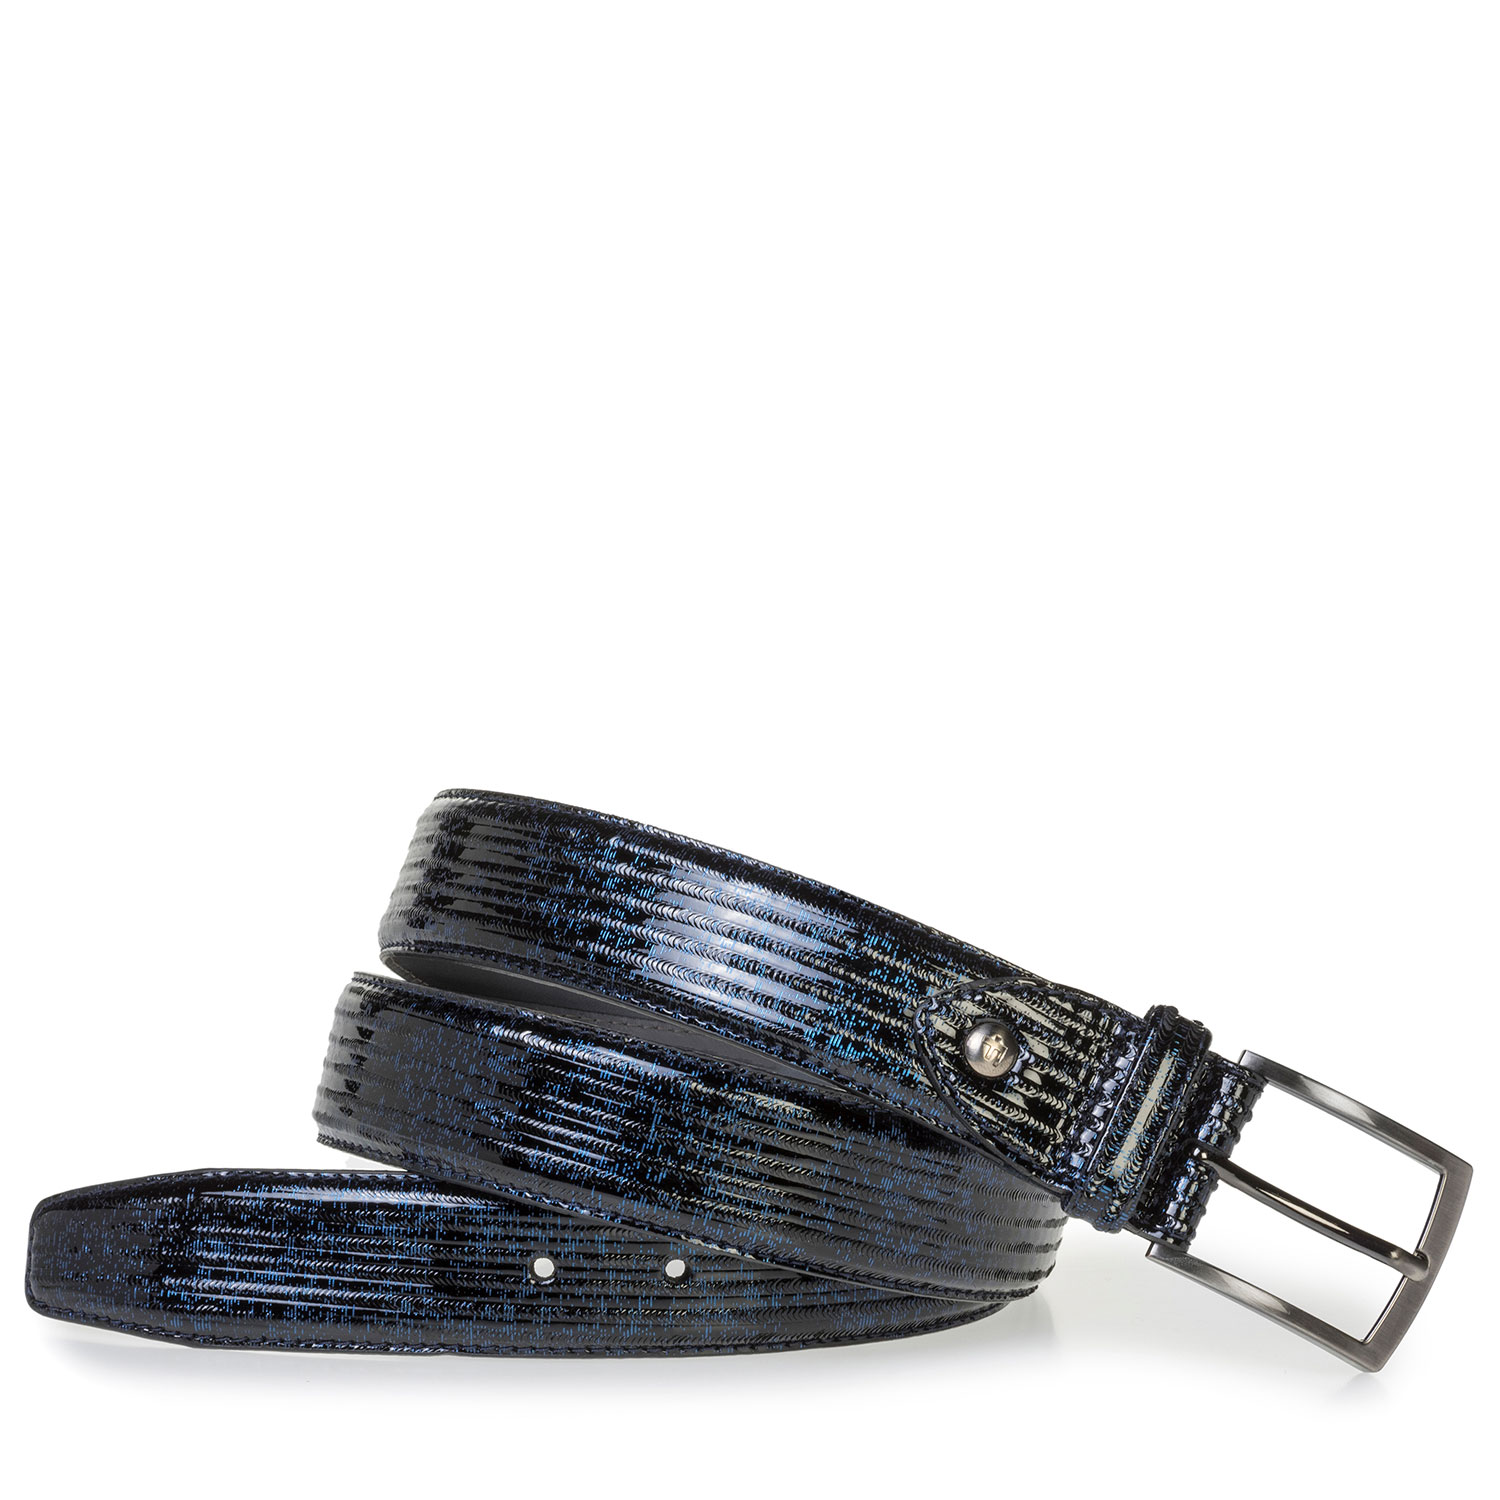 75203/00 - Blue patent leather belt with print